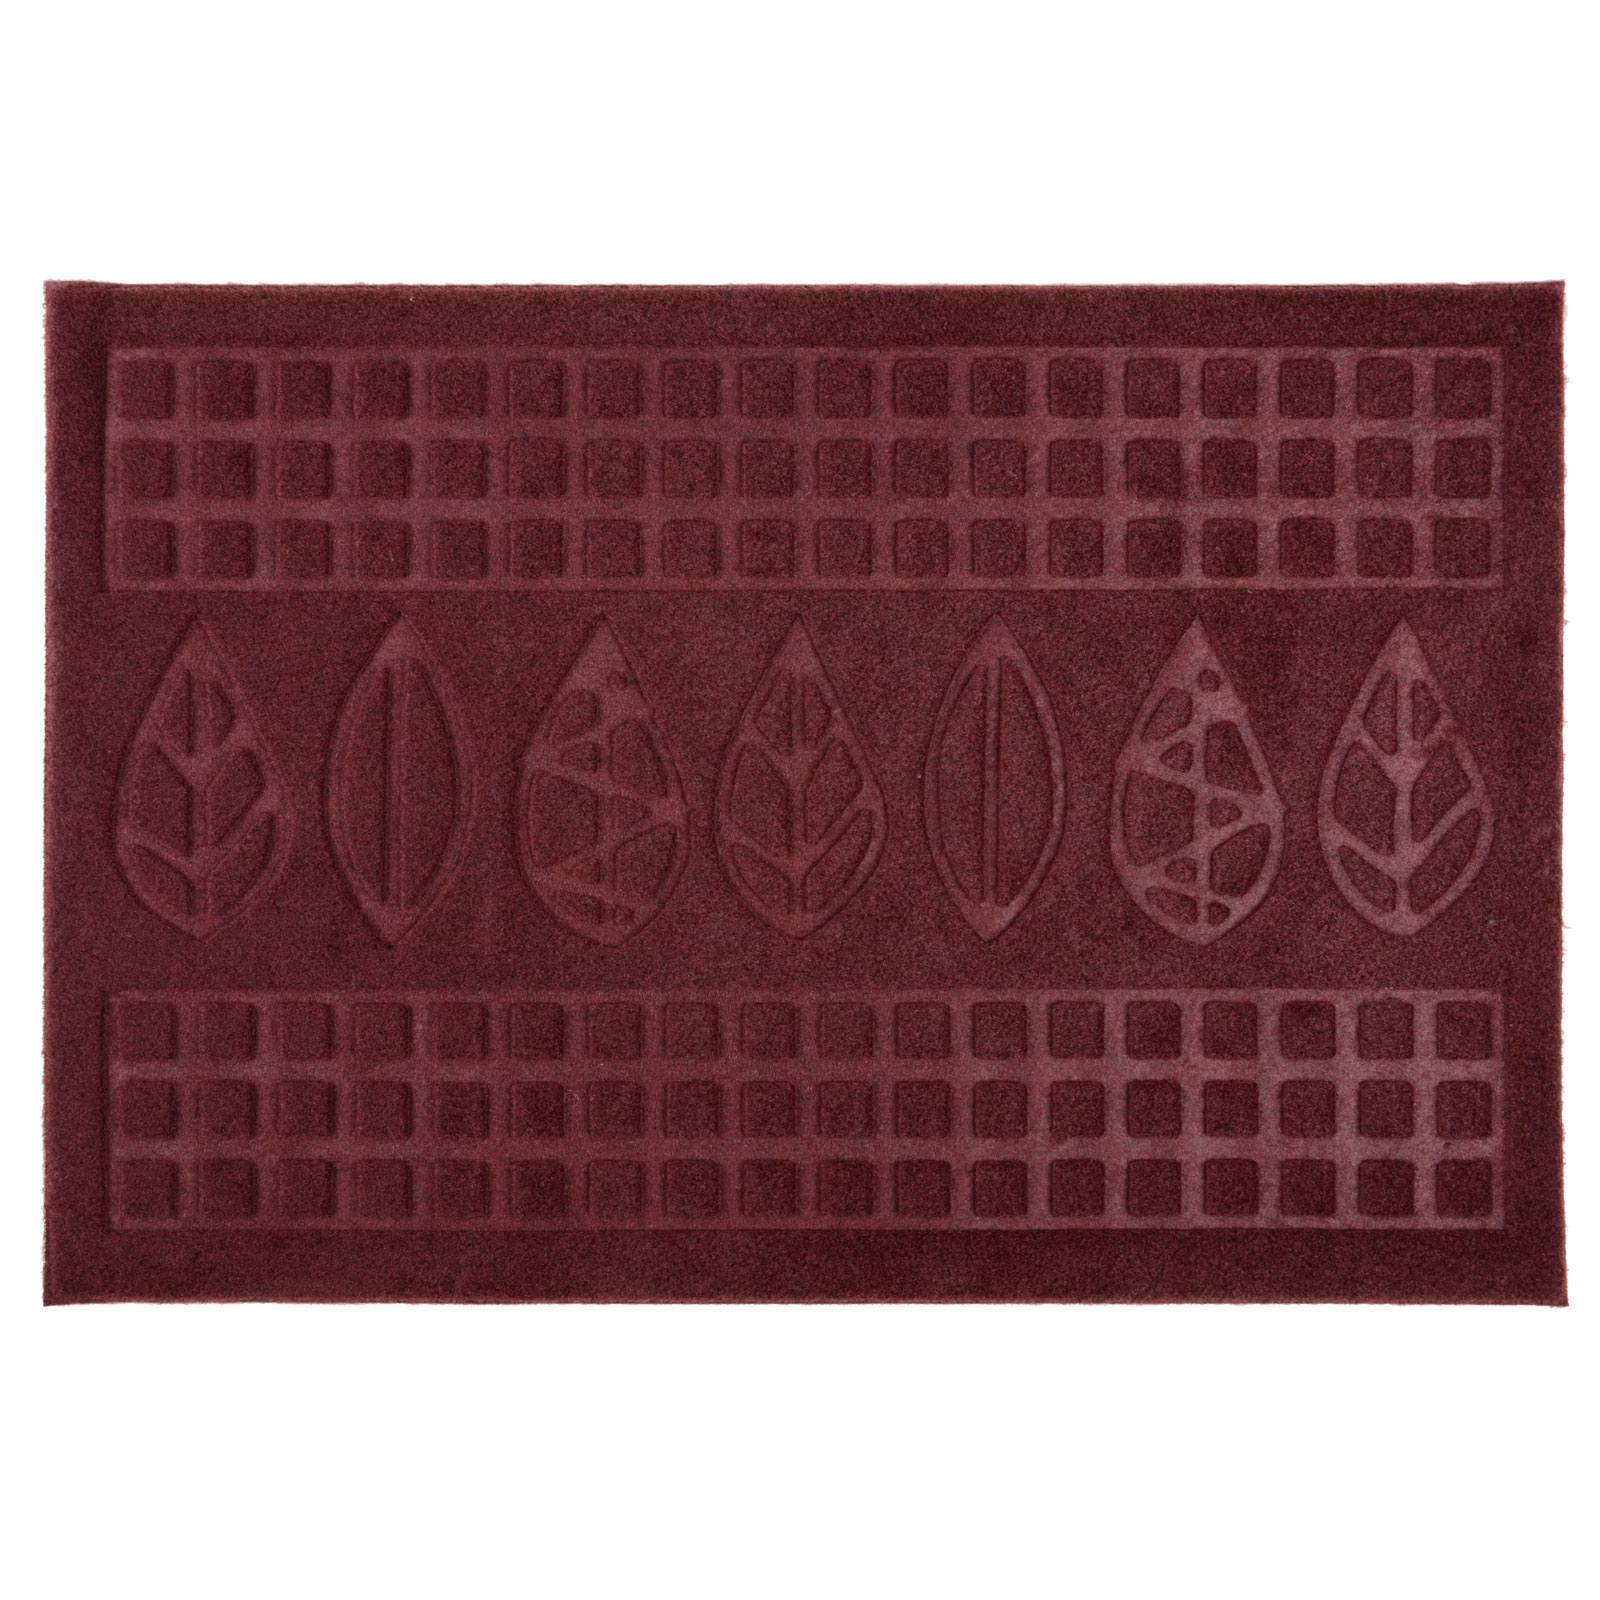 Door mat with leaves leafs design rubber welcome entrance for Floor mat design